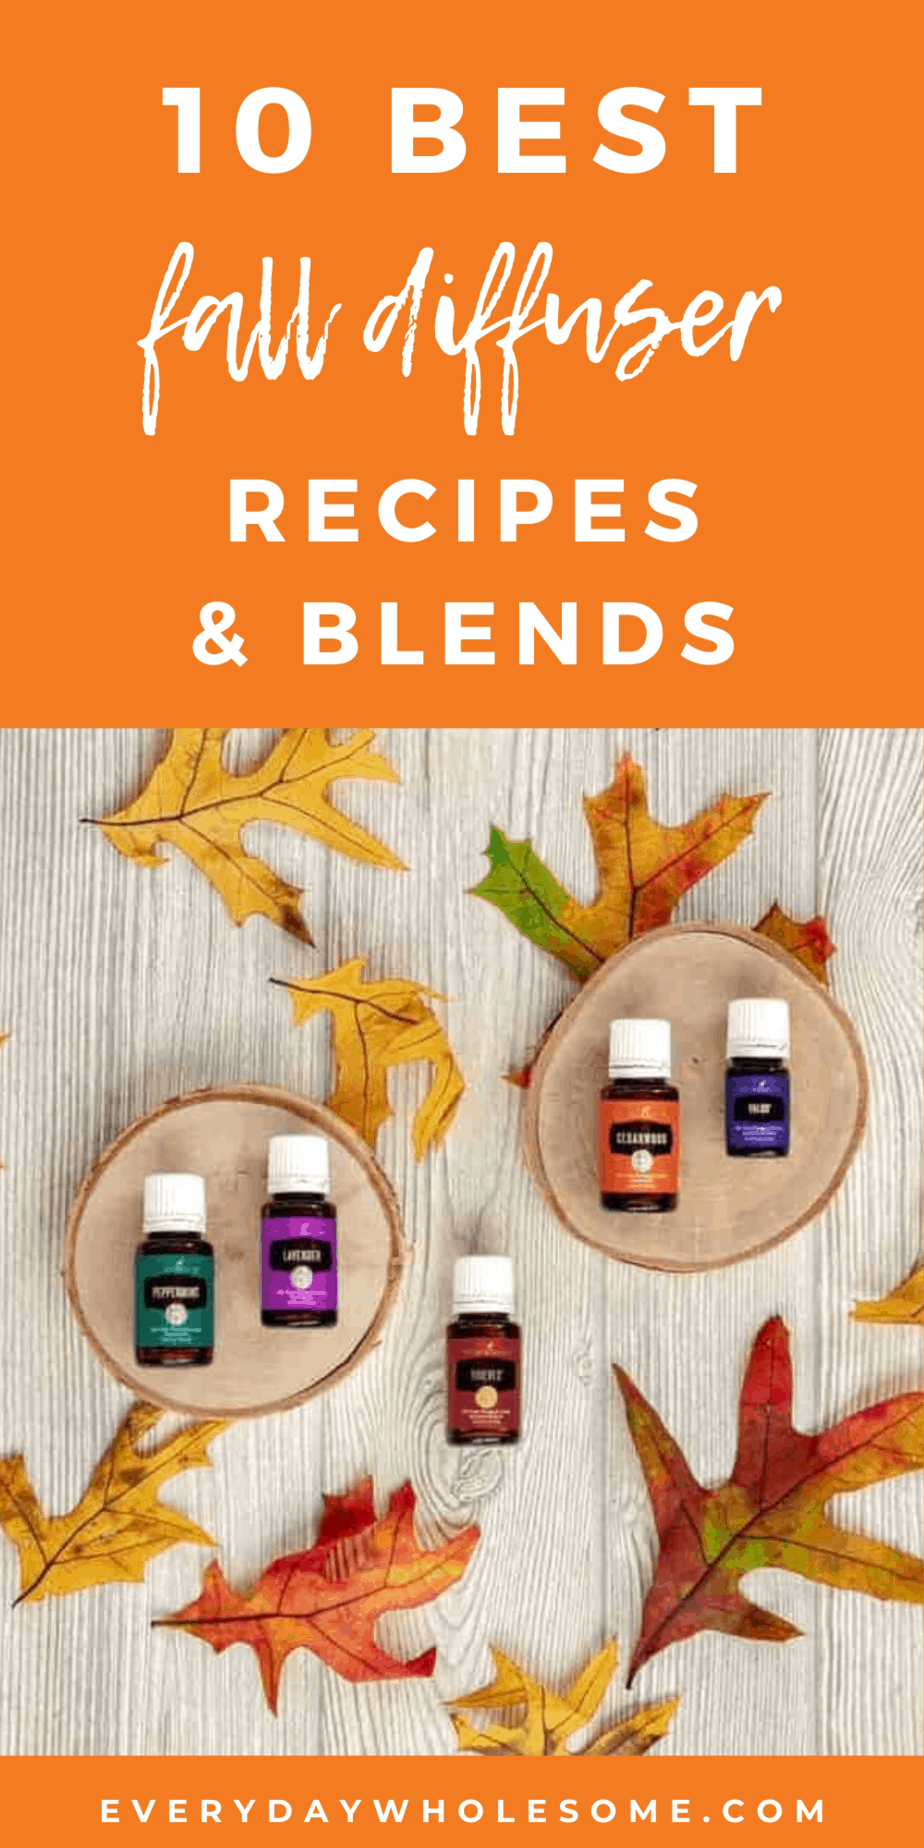 10 best fall diffuser recipes blends young living essential oils